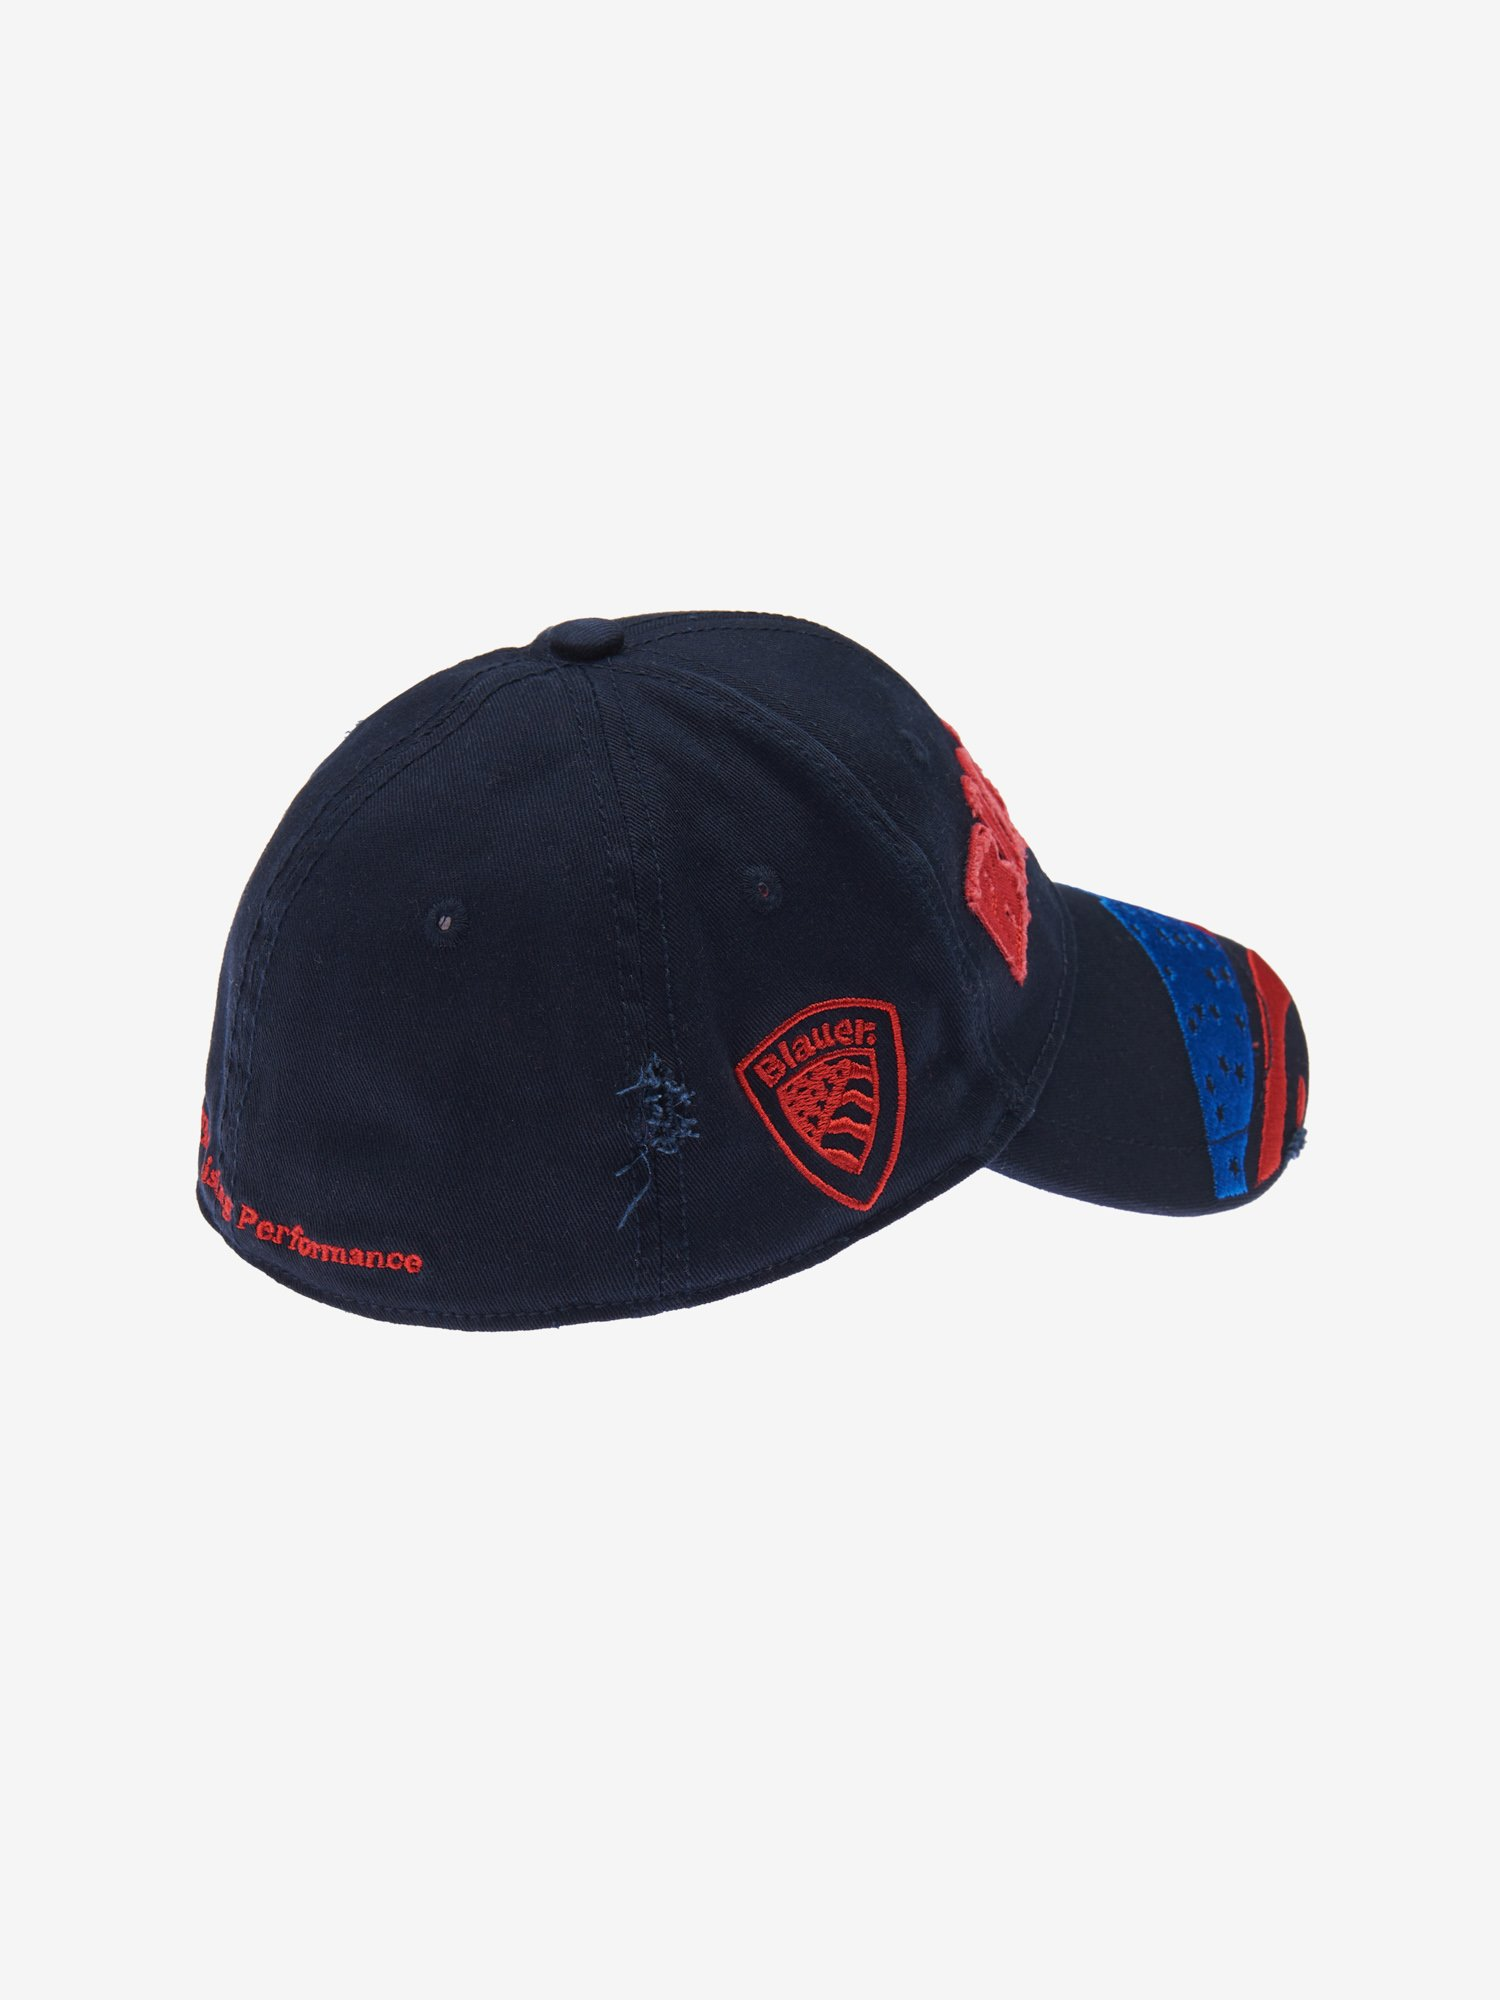 JUNIOR CAP WITH VISOR - Blauer